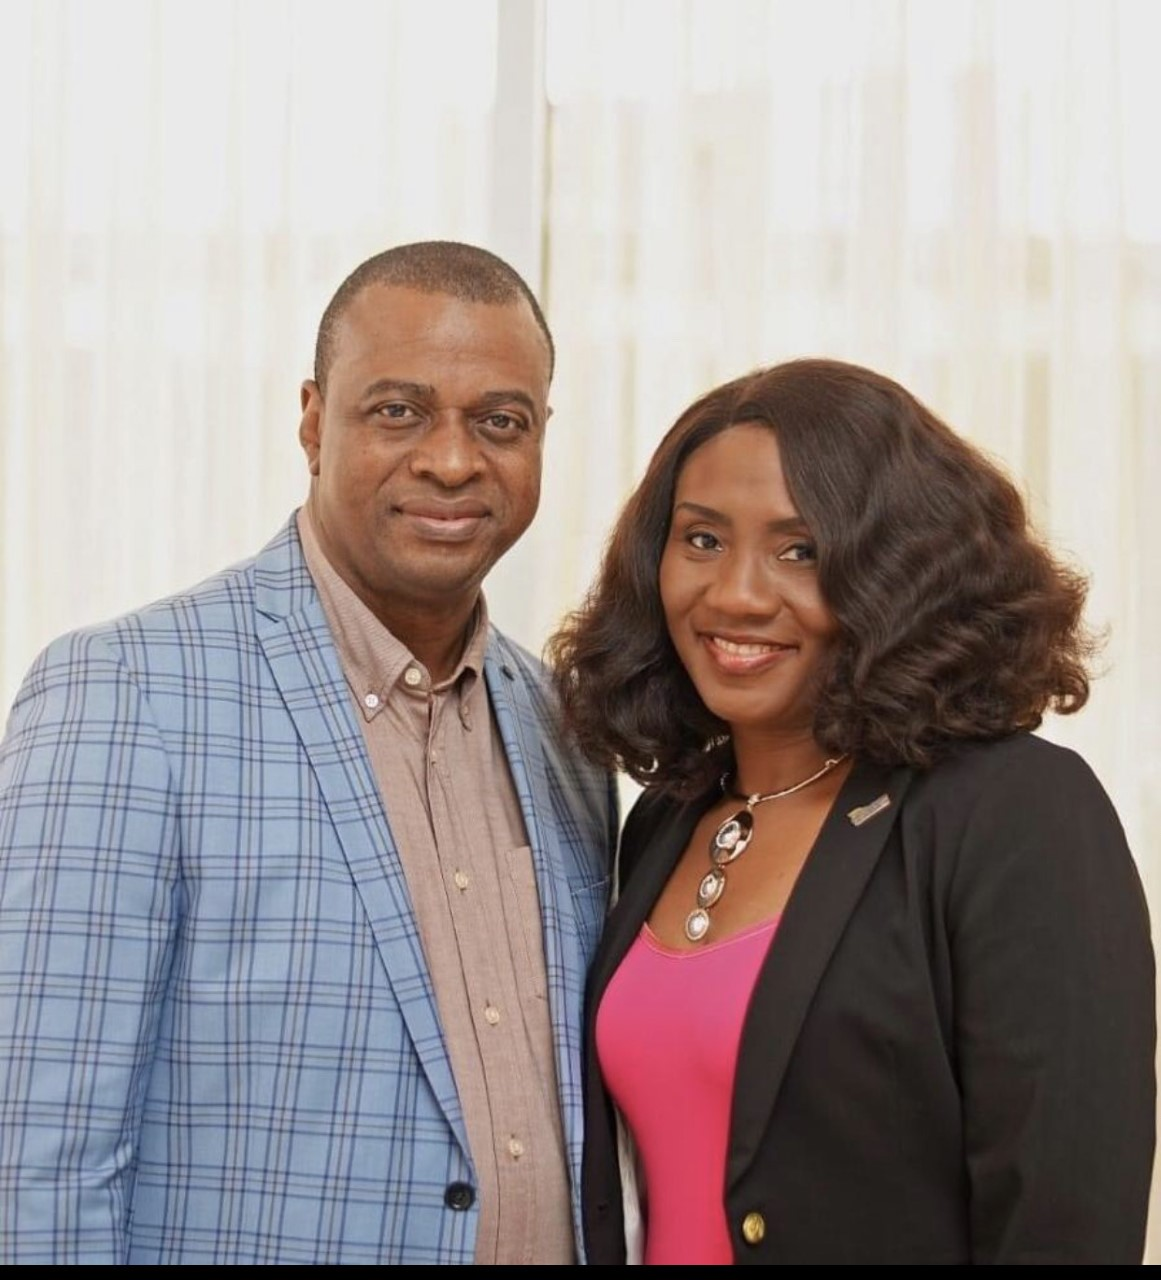 Victor Adeyemi Spreads The Word Of Global Harvest Church 4